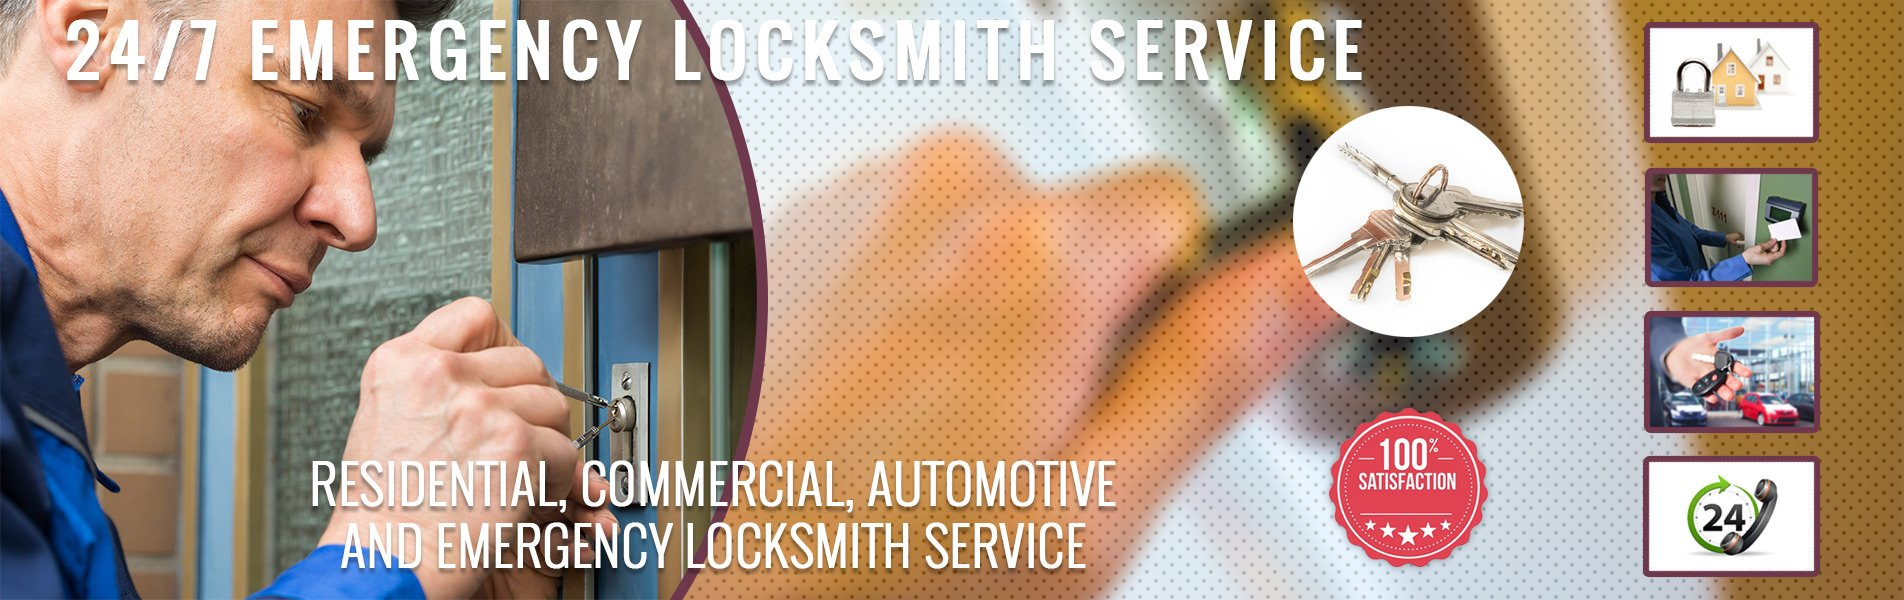 Gary Locksmith Store, Gary, IN 219-728-5140